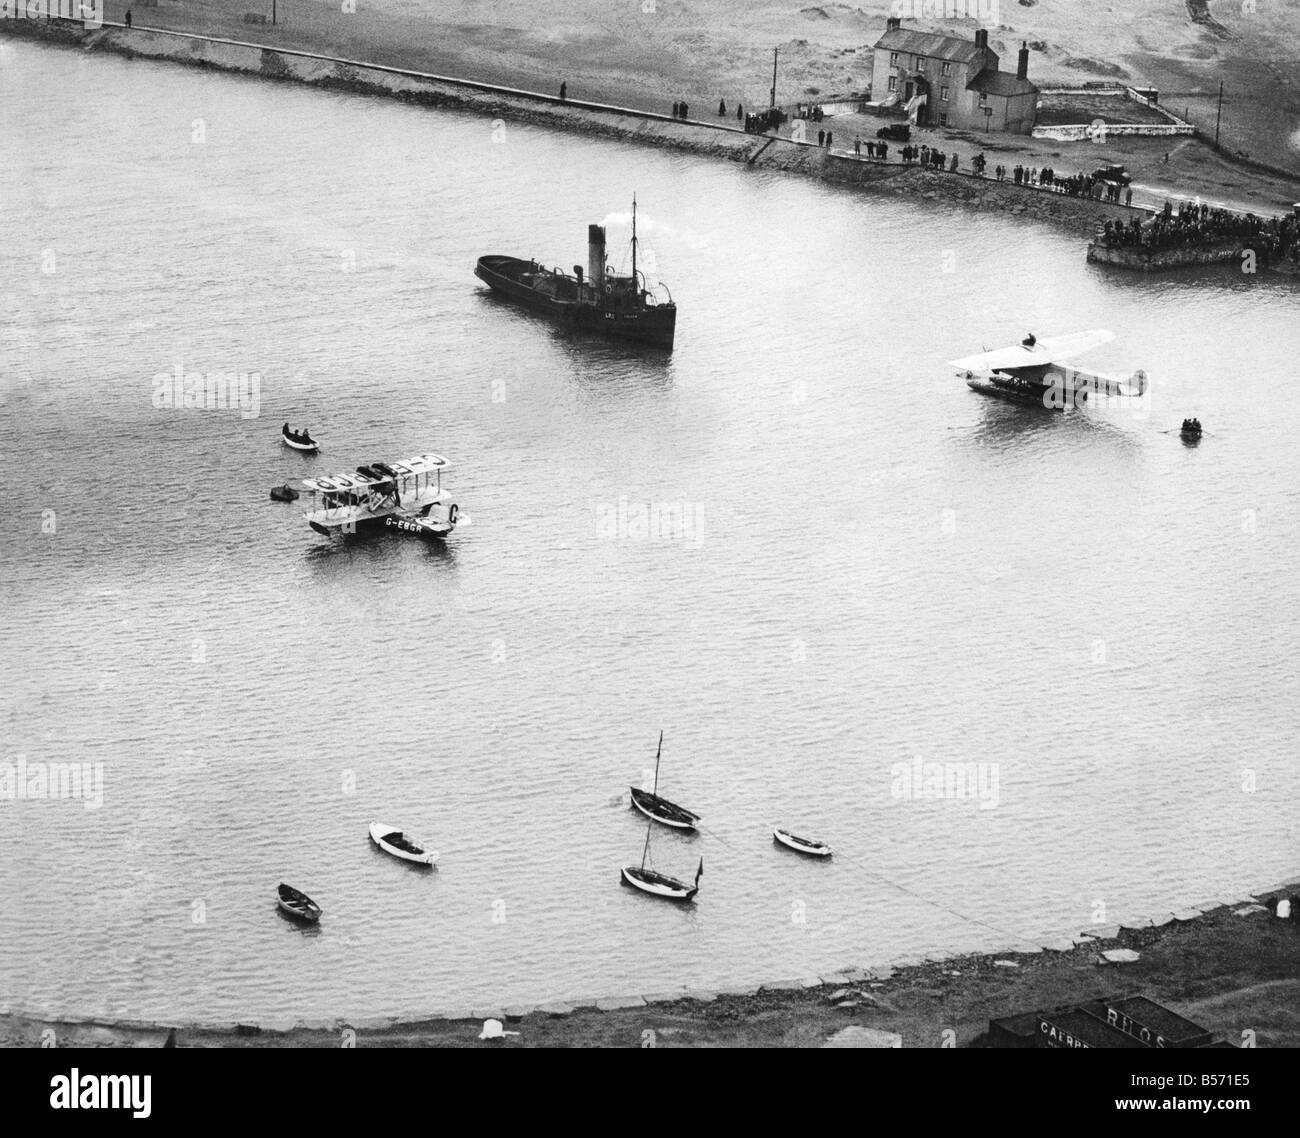 Amelia Earhart, the first woman to fly across the Atlantic Ocean. The friendship anchored at Burry Point, Carmarthenshire, - Stock Image